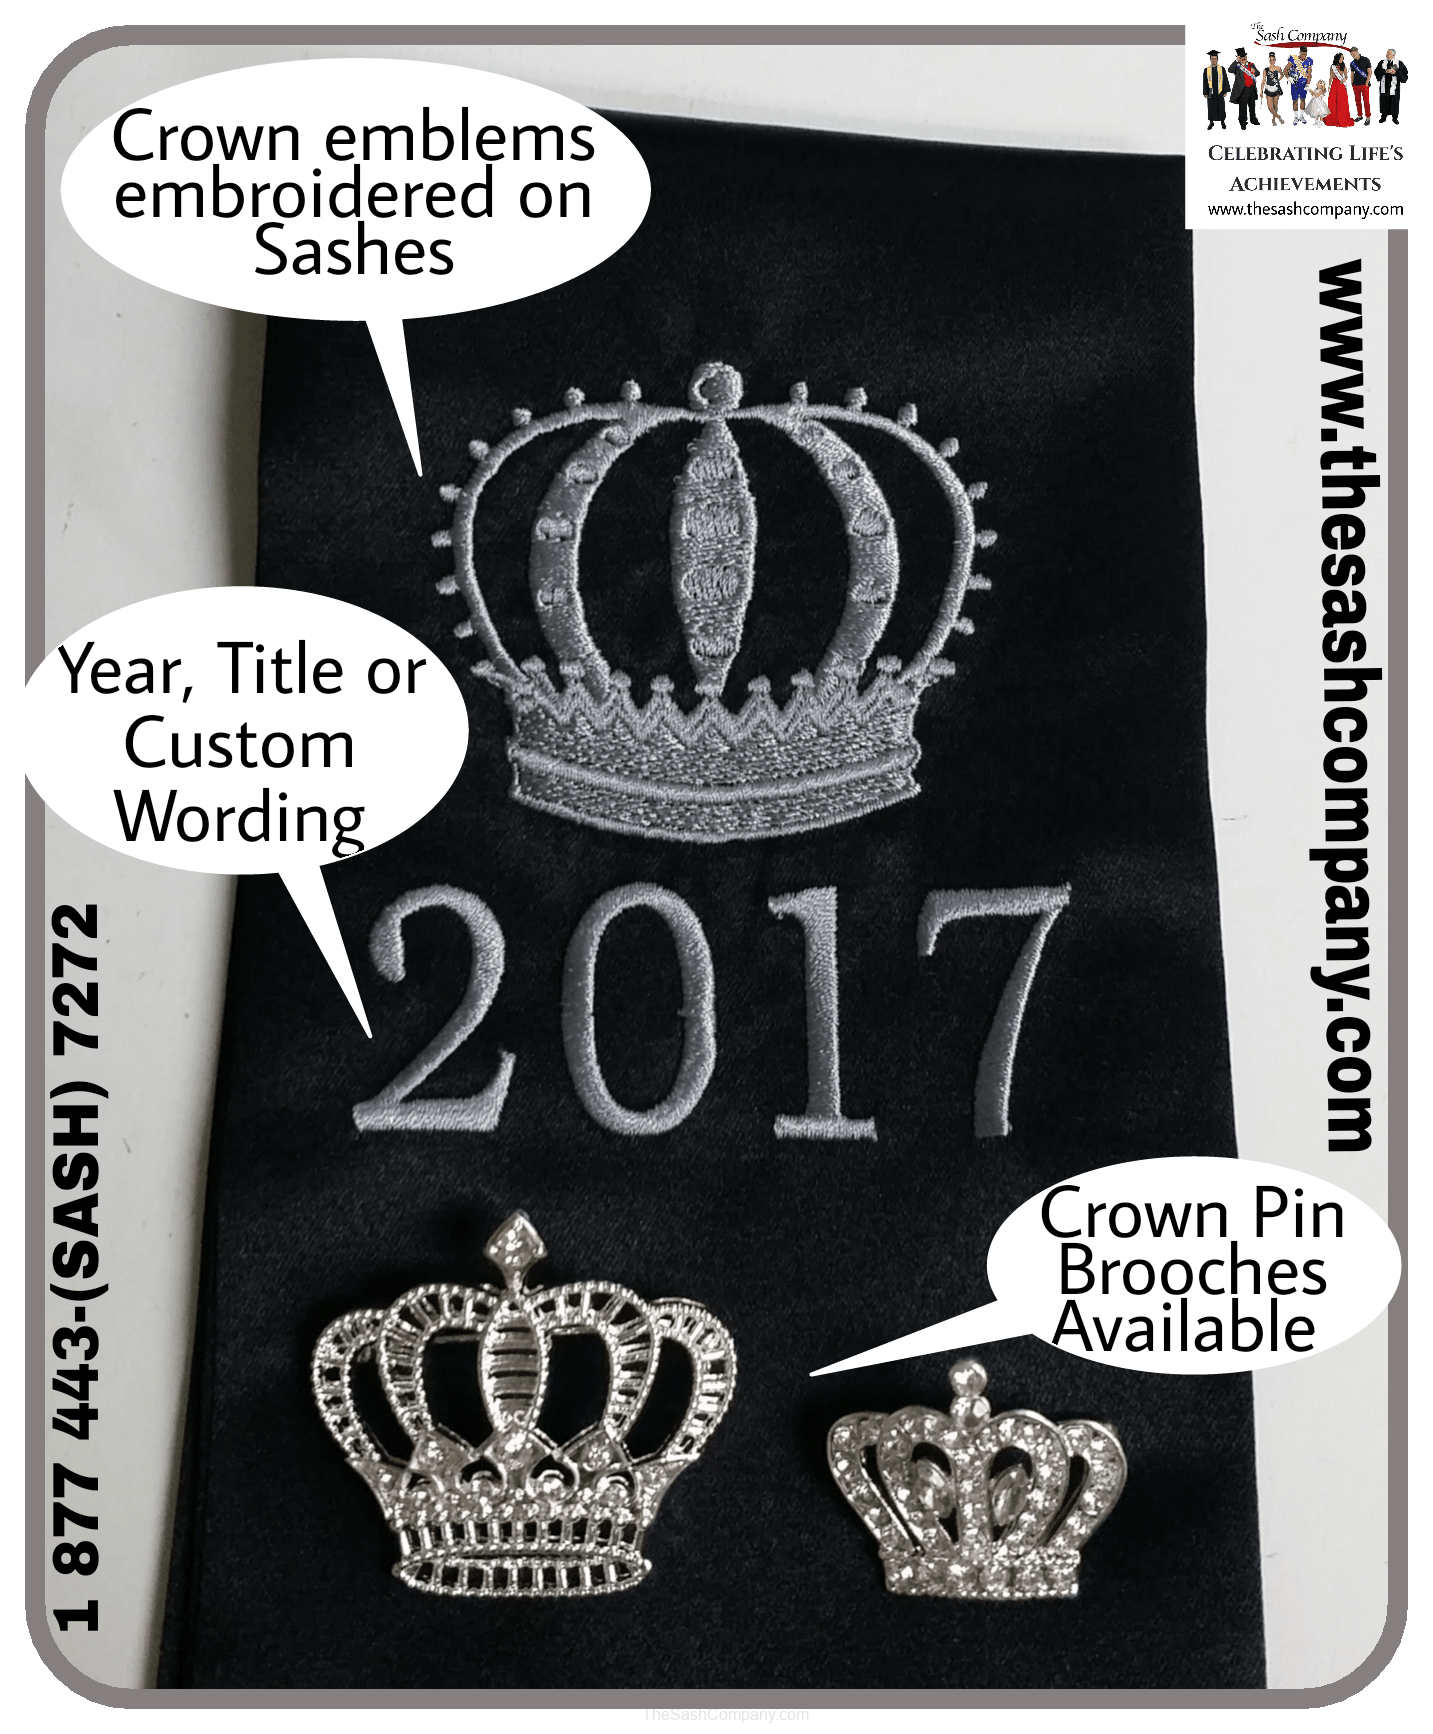 Embroidered Crown on a Sash and Crown Brooch Pins